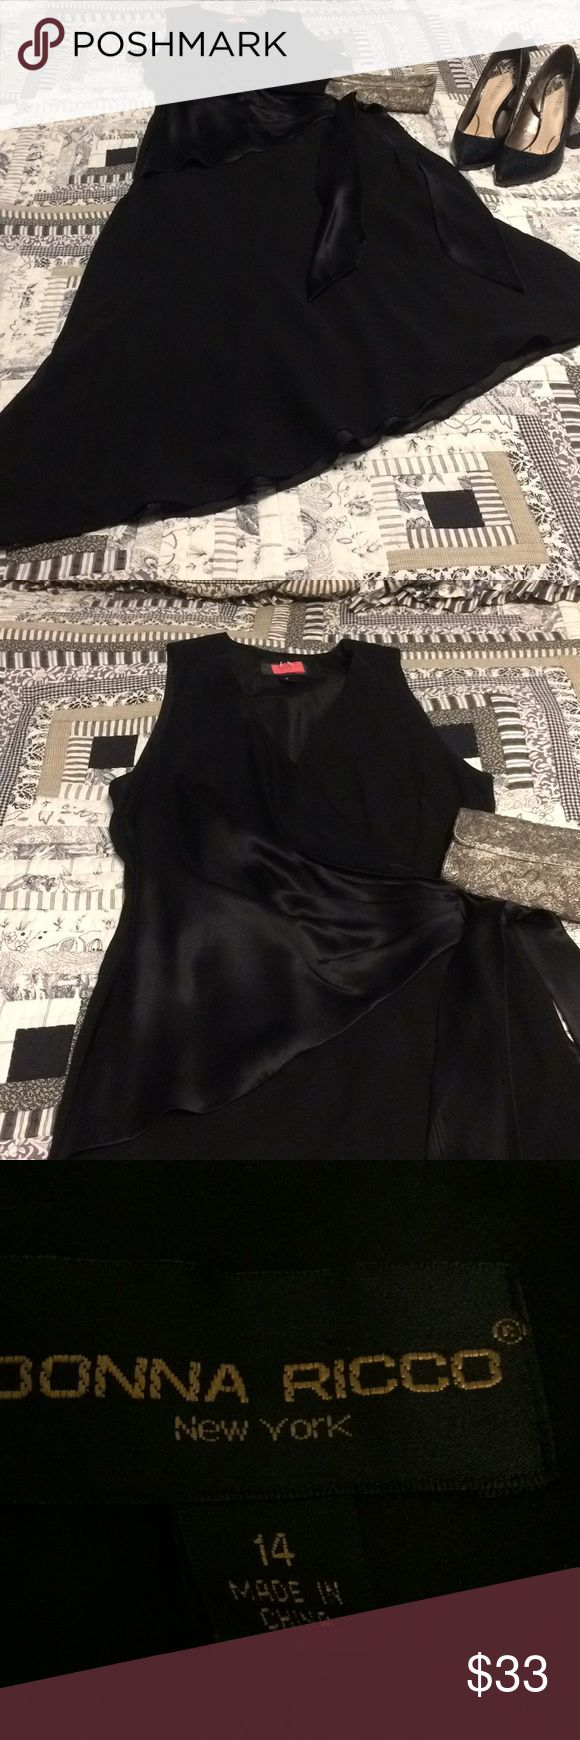 💋Donna Ricco New York Size 14 black silk dress Donna Ricco New York size 14 silk lined dress. Great asymmetrical hemline and mix of 2 silk fabrics to make this formal dress. Bought for a cruise.   Smoke free and pet free home Donna Ricco Dresses Asymmetrical